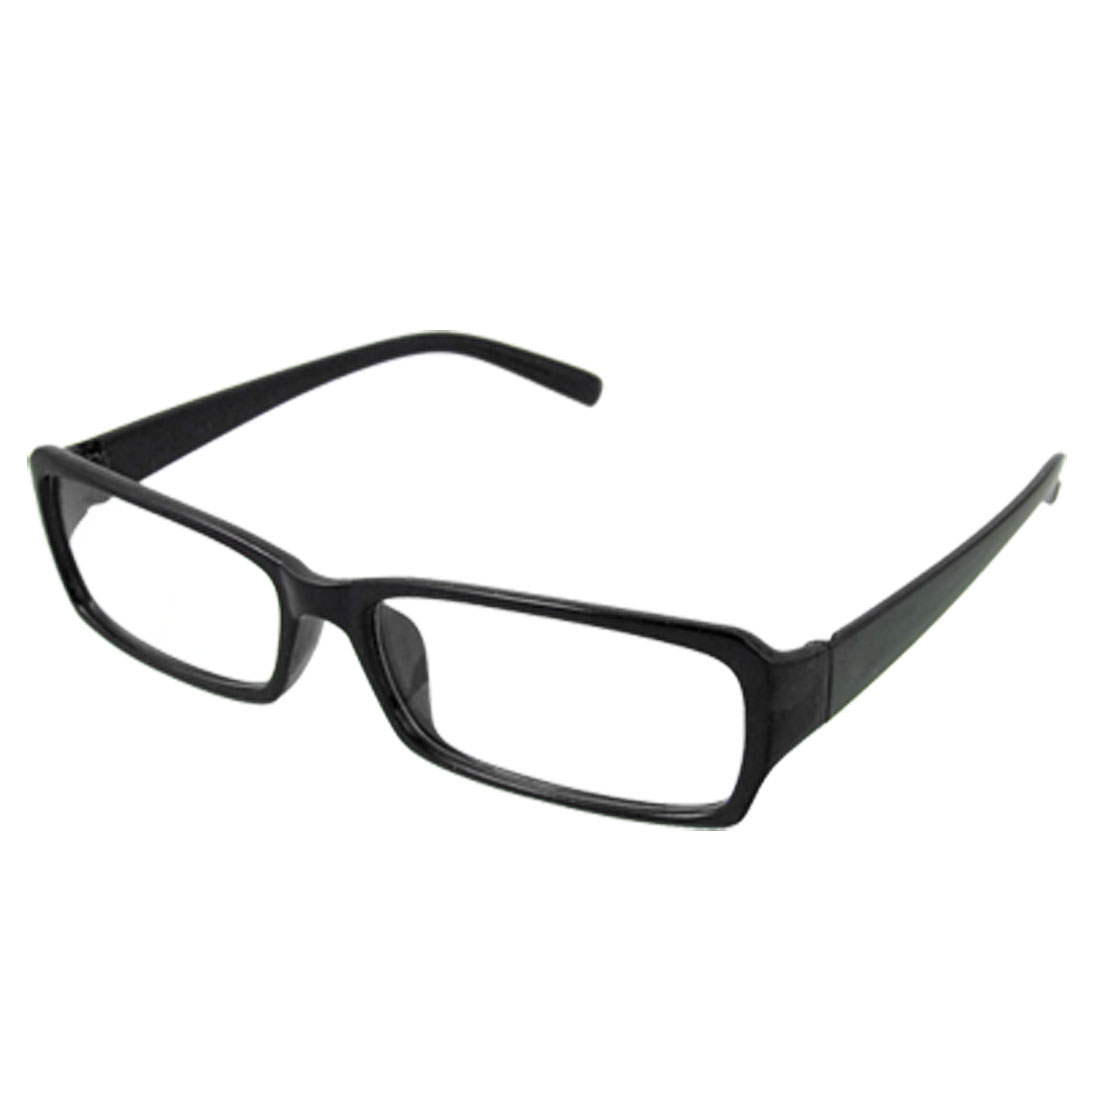 Black Frame Rimmed Plastic Arms Clear Lens Plano Glasses for Unisex